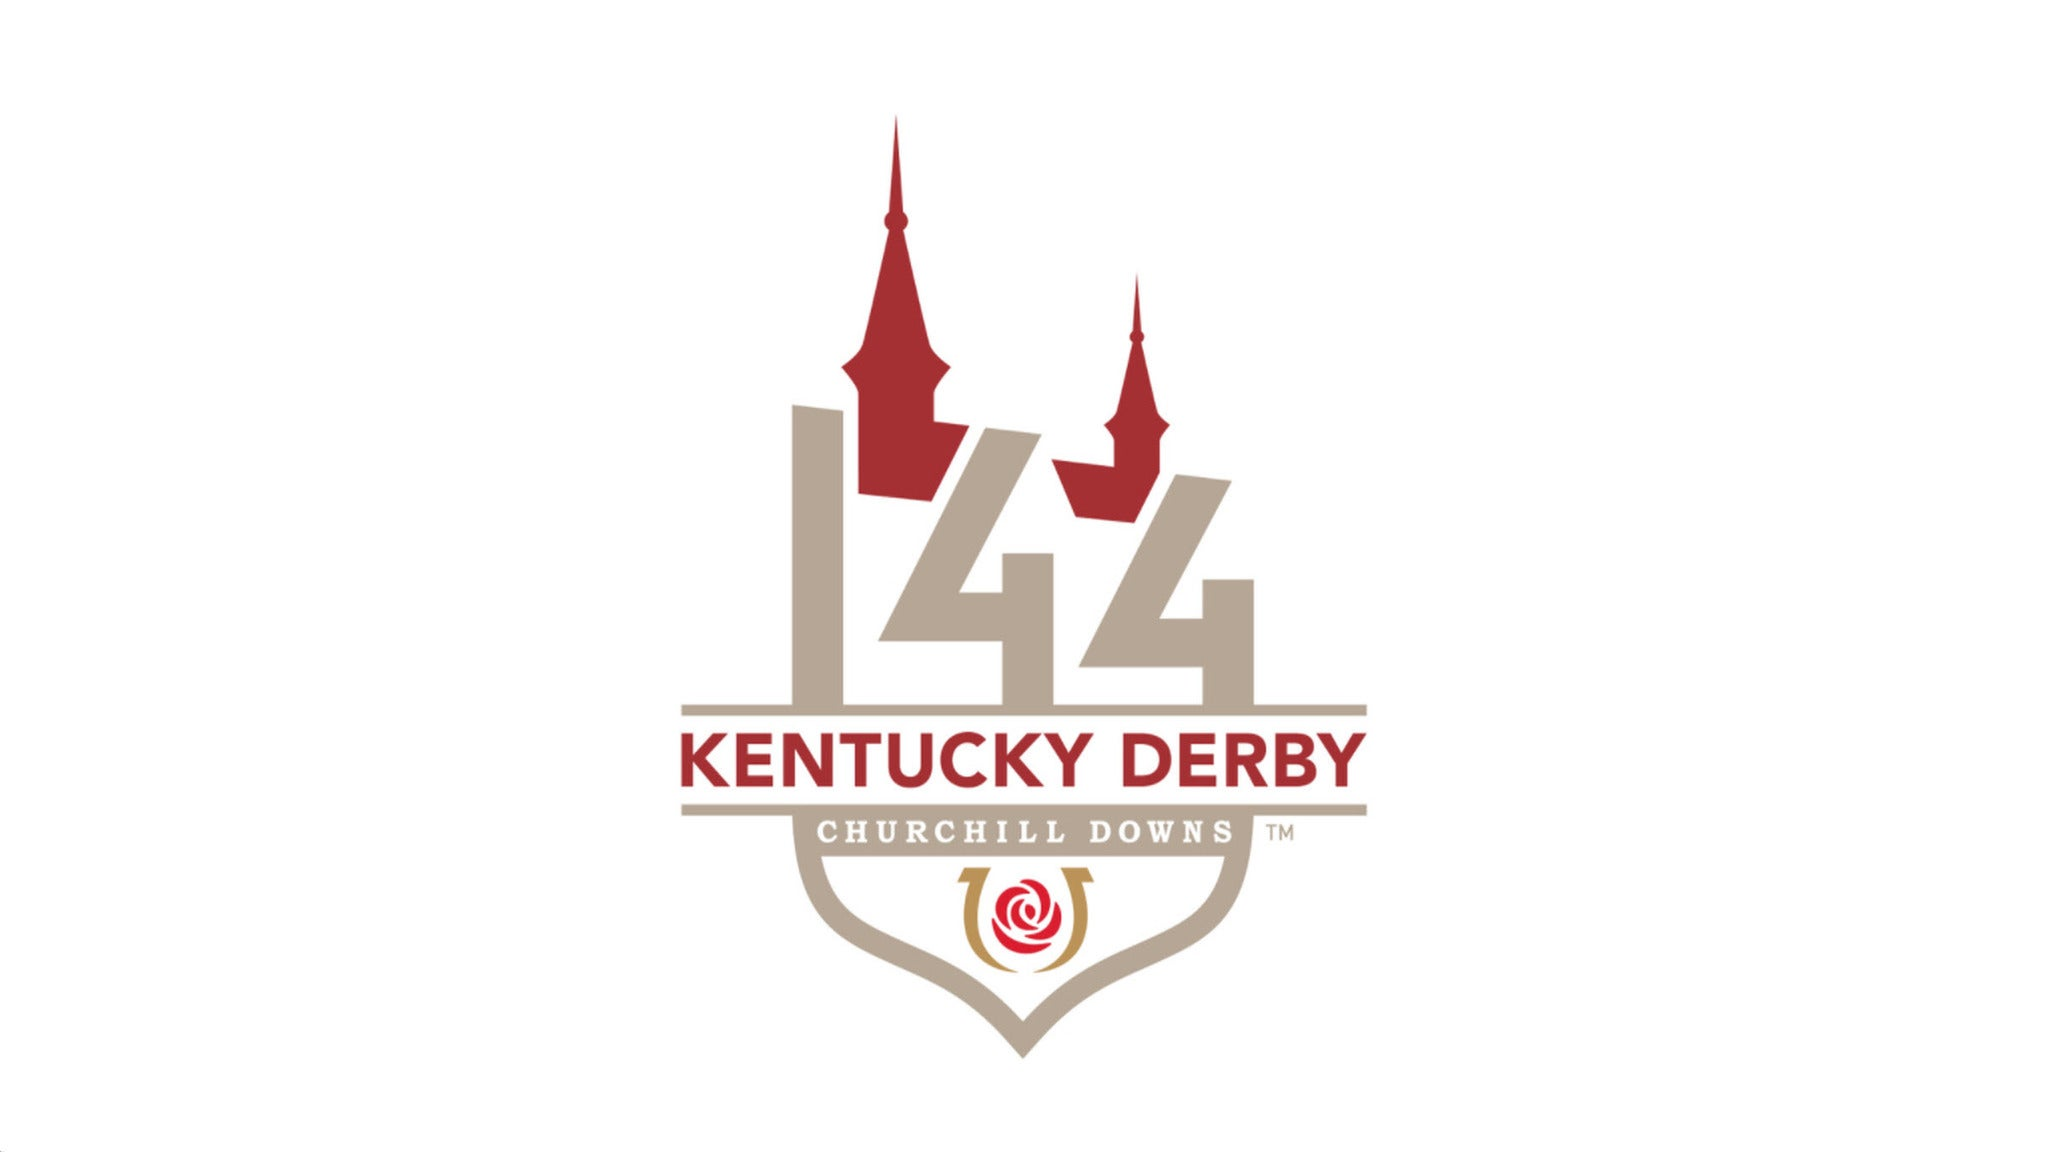 144th Kentucky Derby - Reserved Seating at Churchill Downs